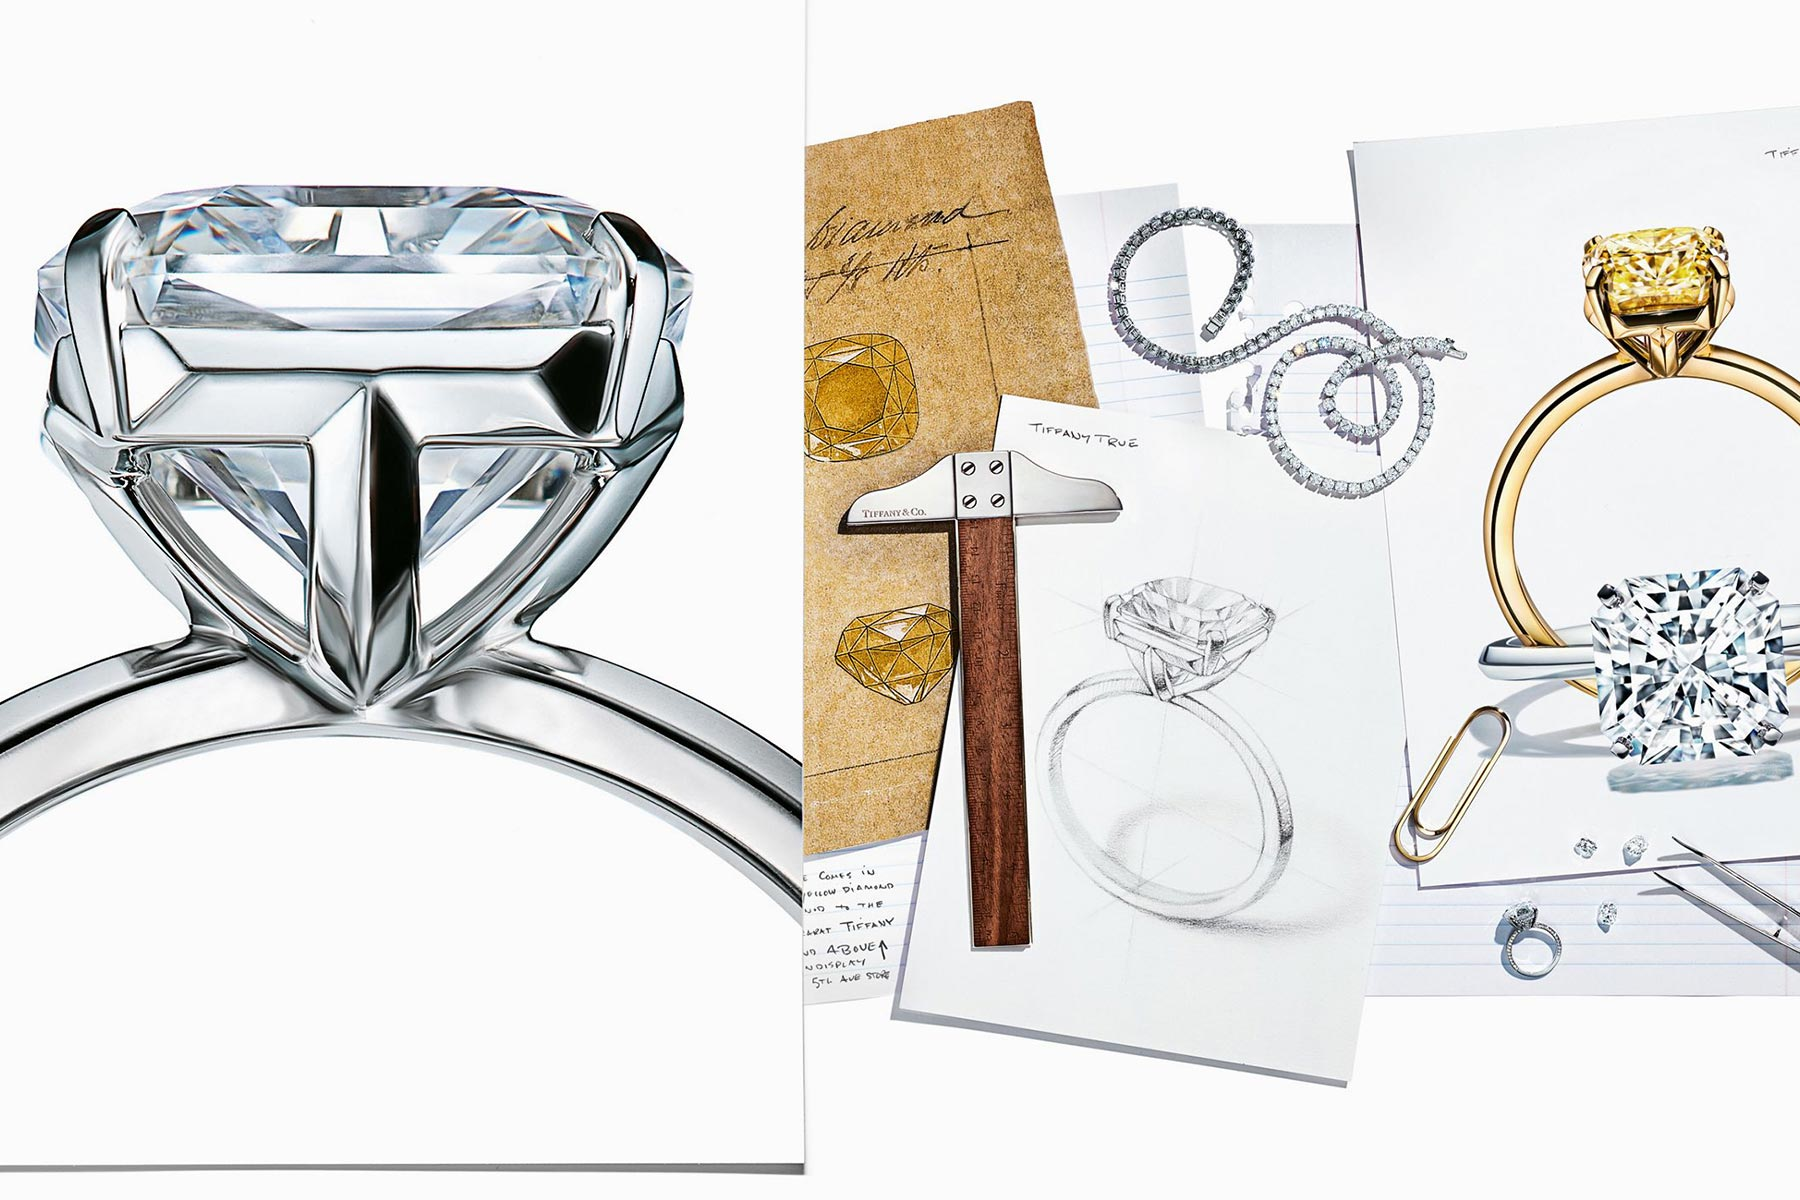 f7ce1daf538bb8 3 truths and one lie about the new Tiffany True engagement ring